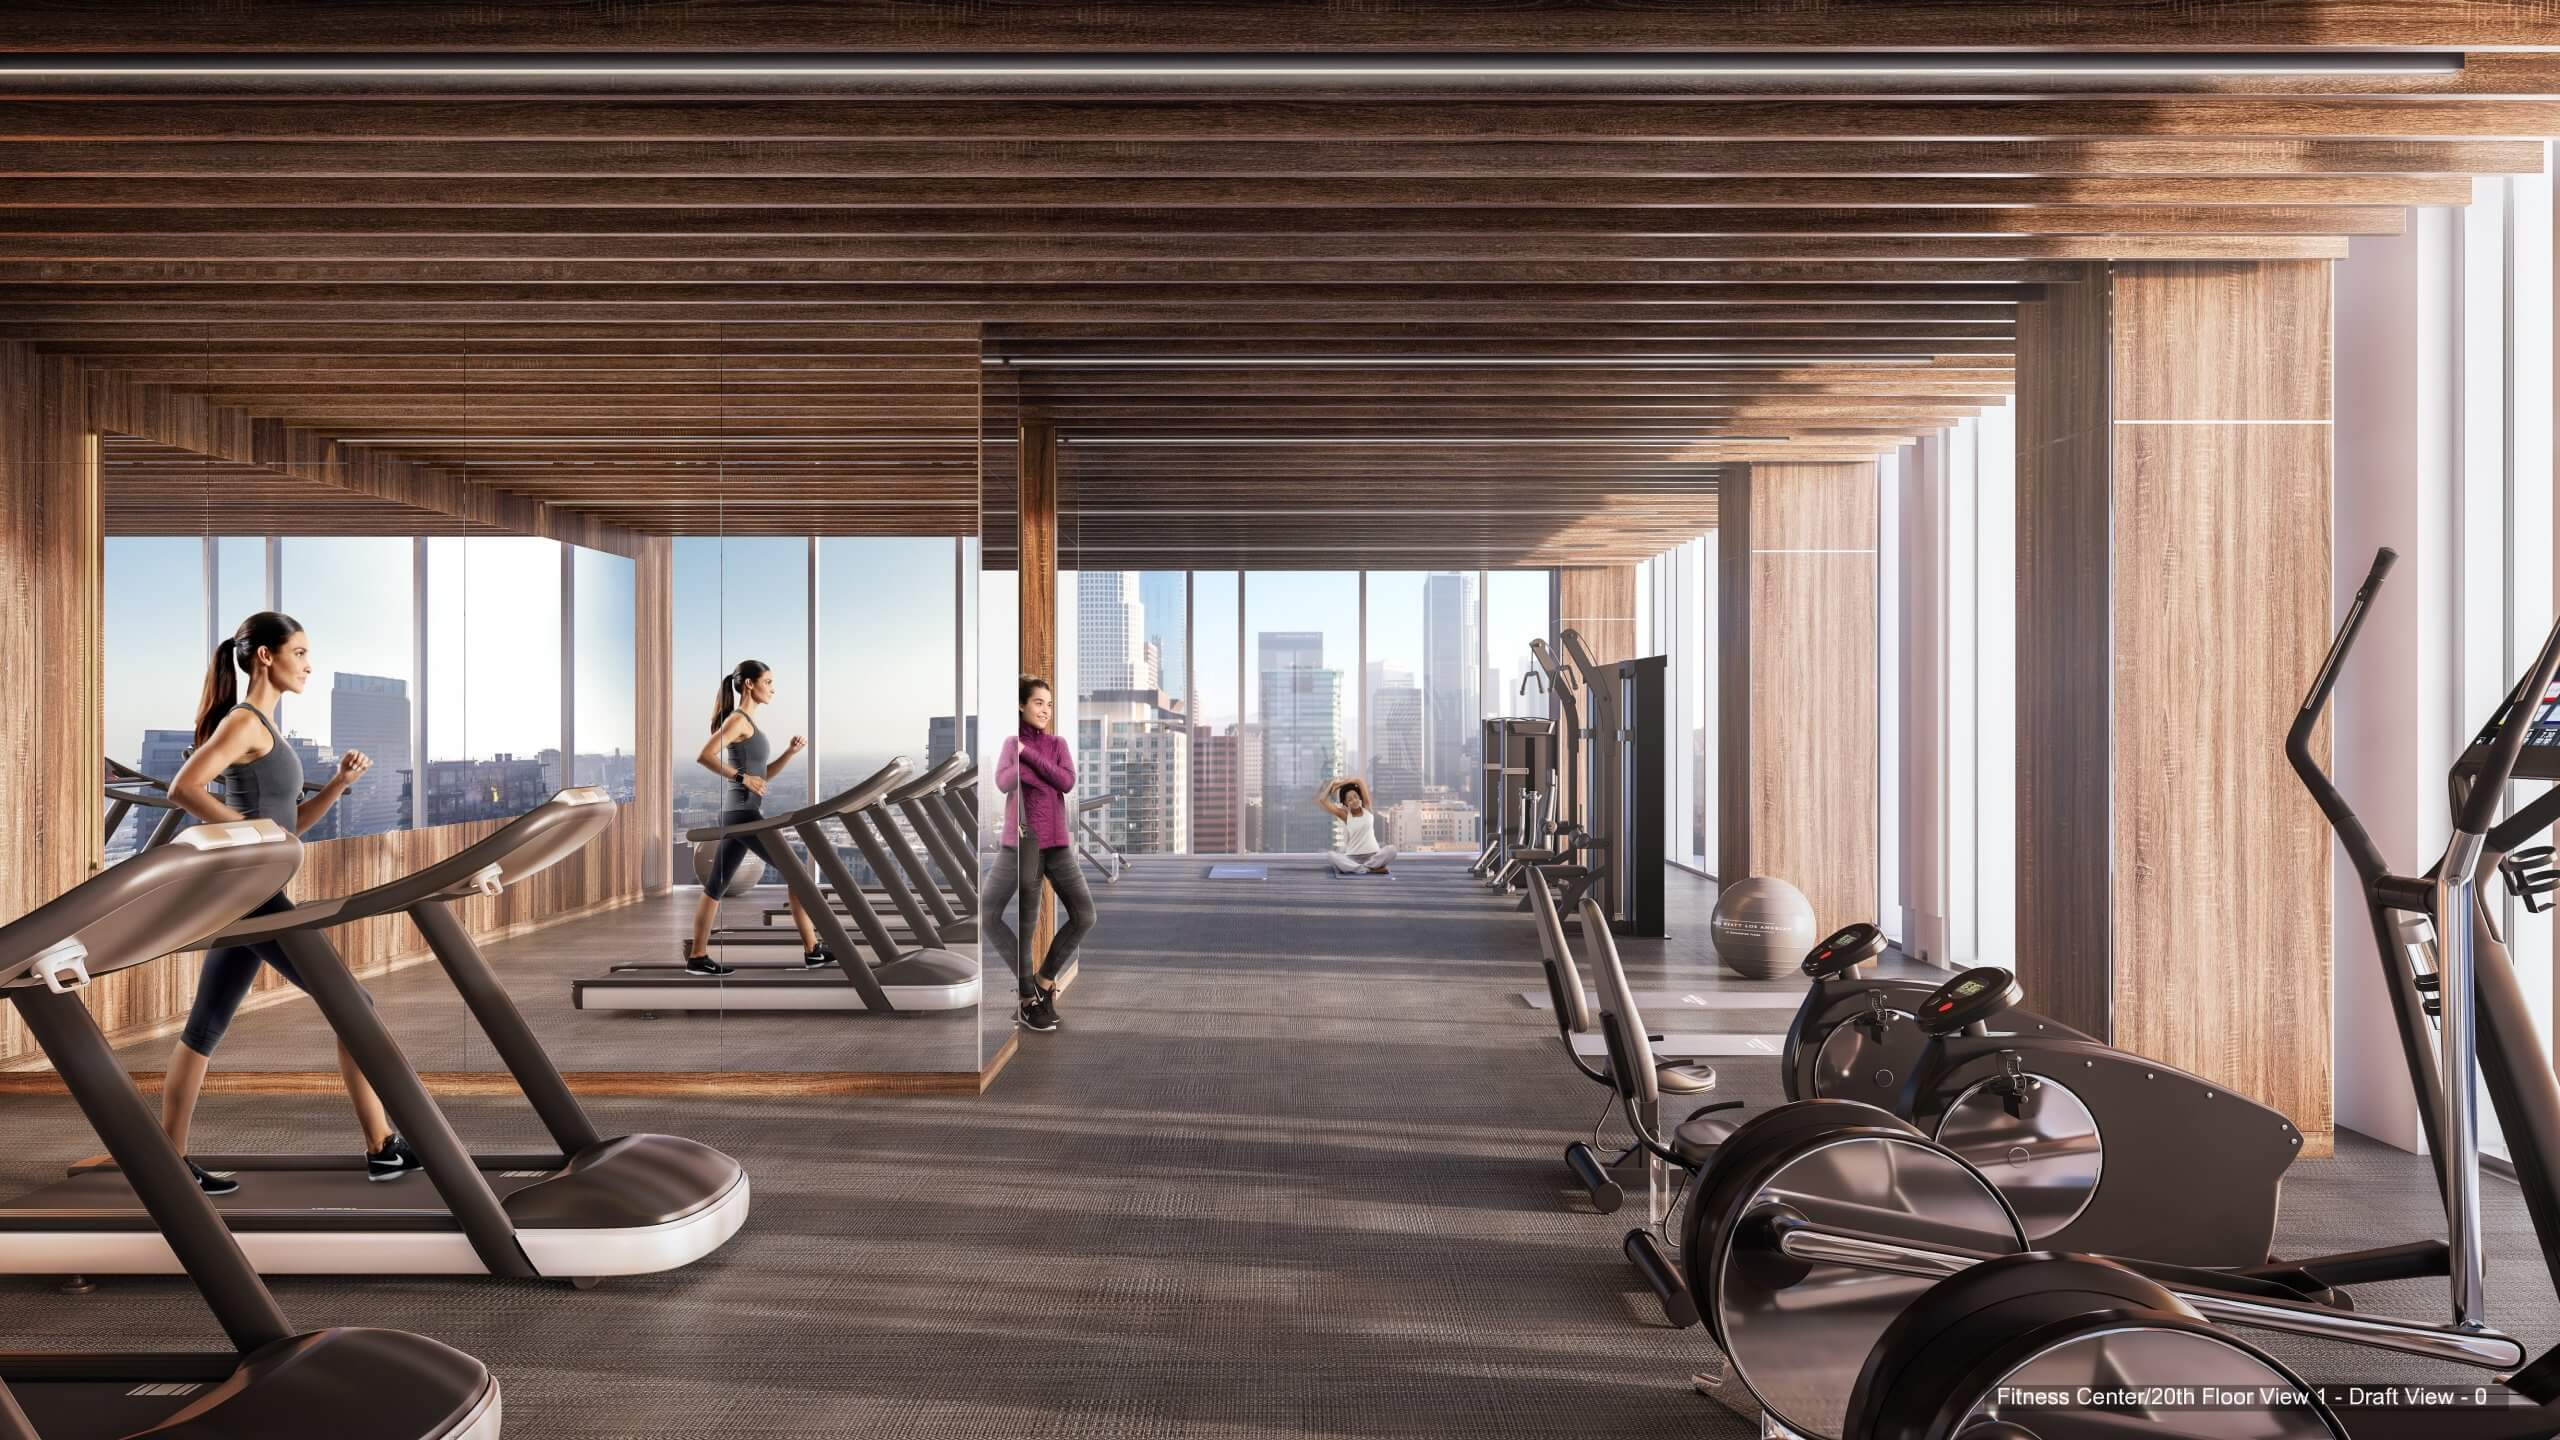 Fitness_Center_20th_Floor_View_1-4.0